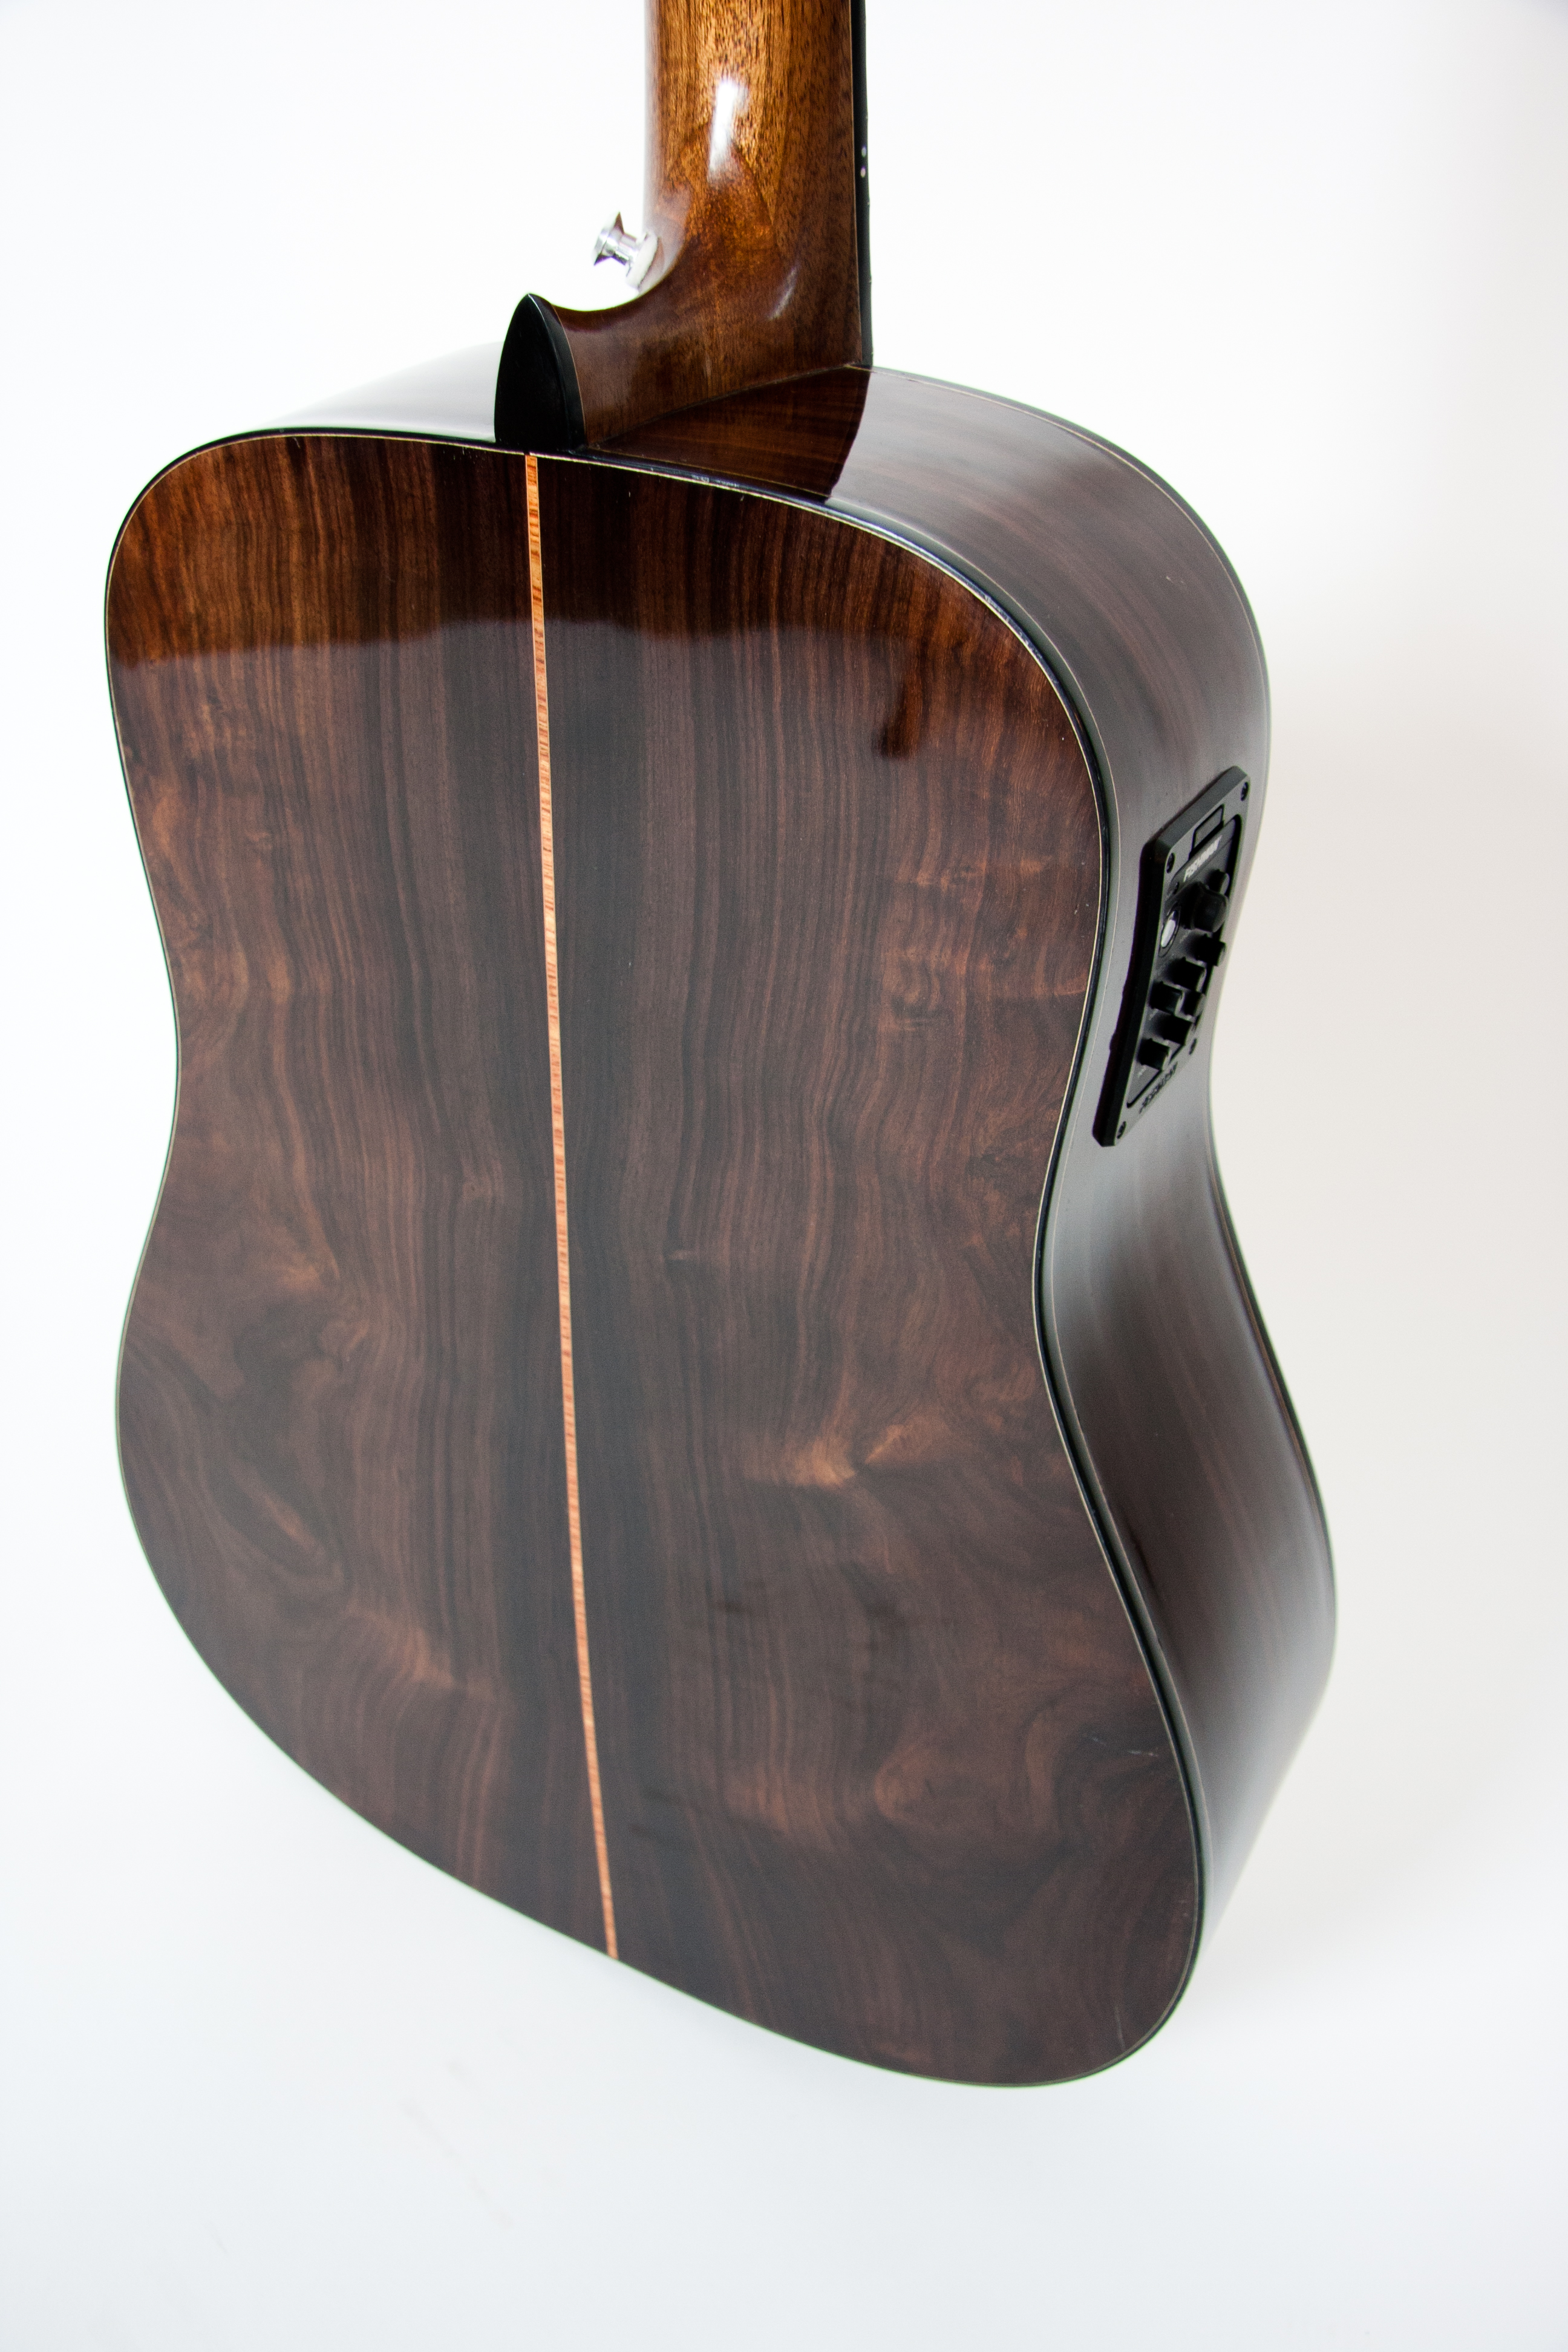 Back detail - Indian rosewood